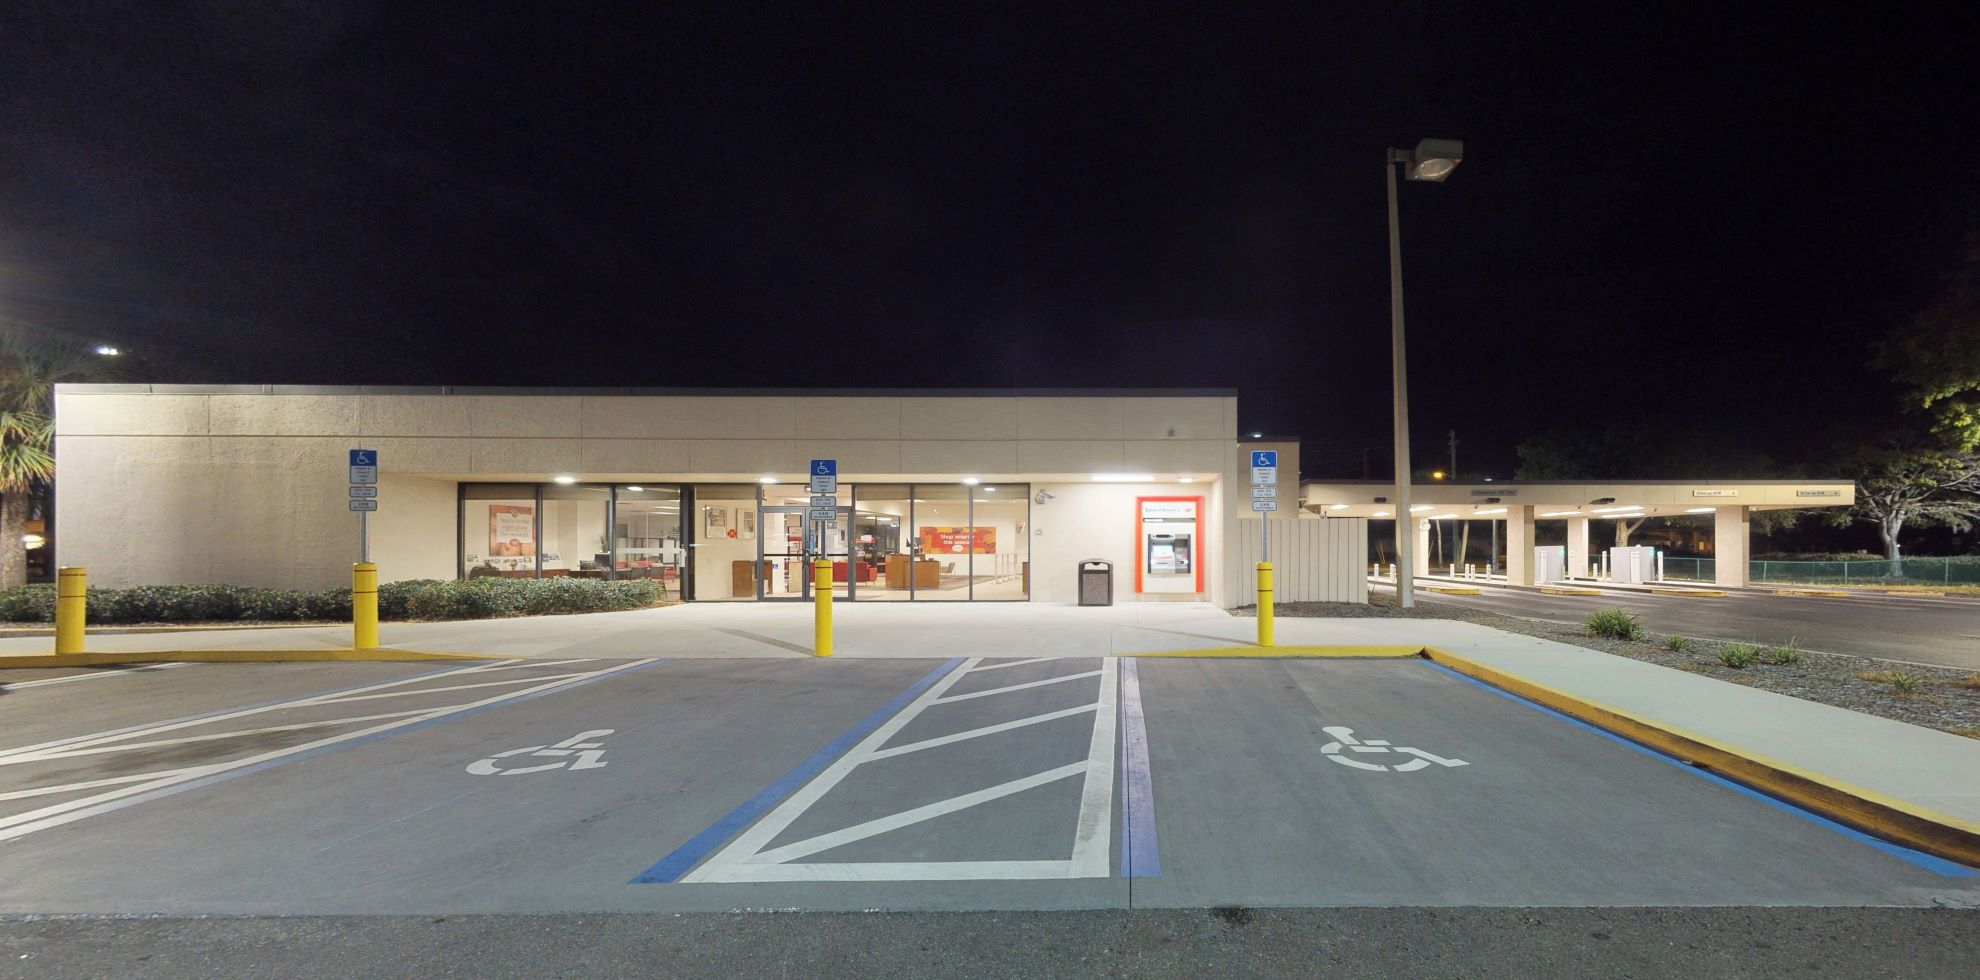 Bank of America financial center with drive-thru ATM and teller   1300 66th St N, Saint Petersburg, FL 33710